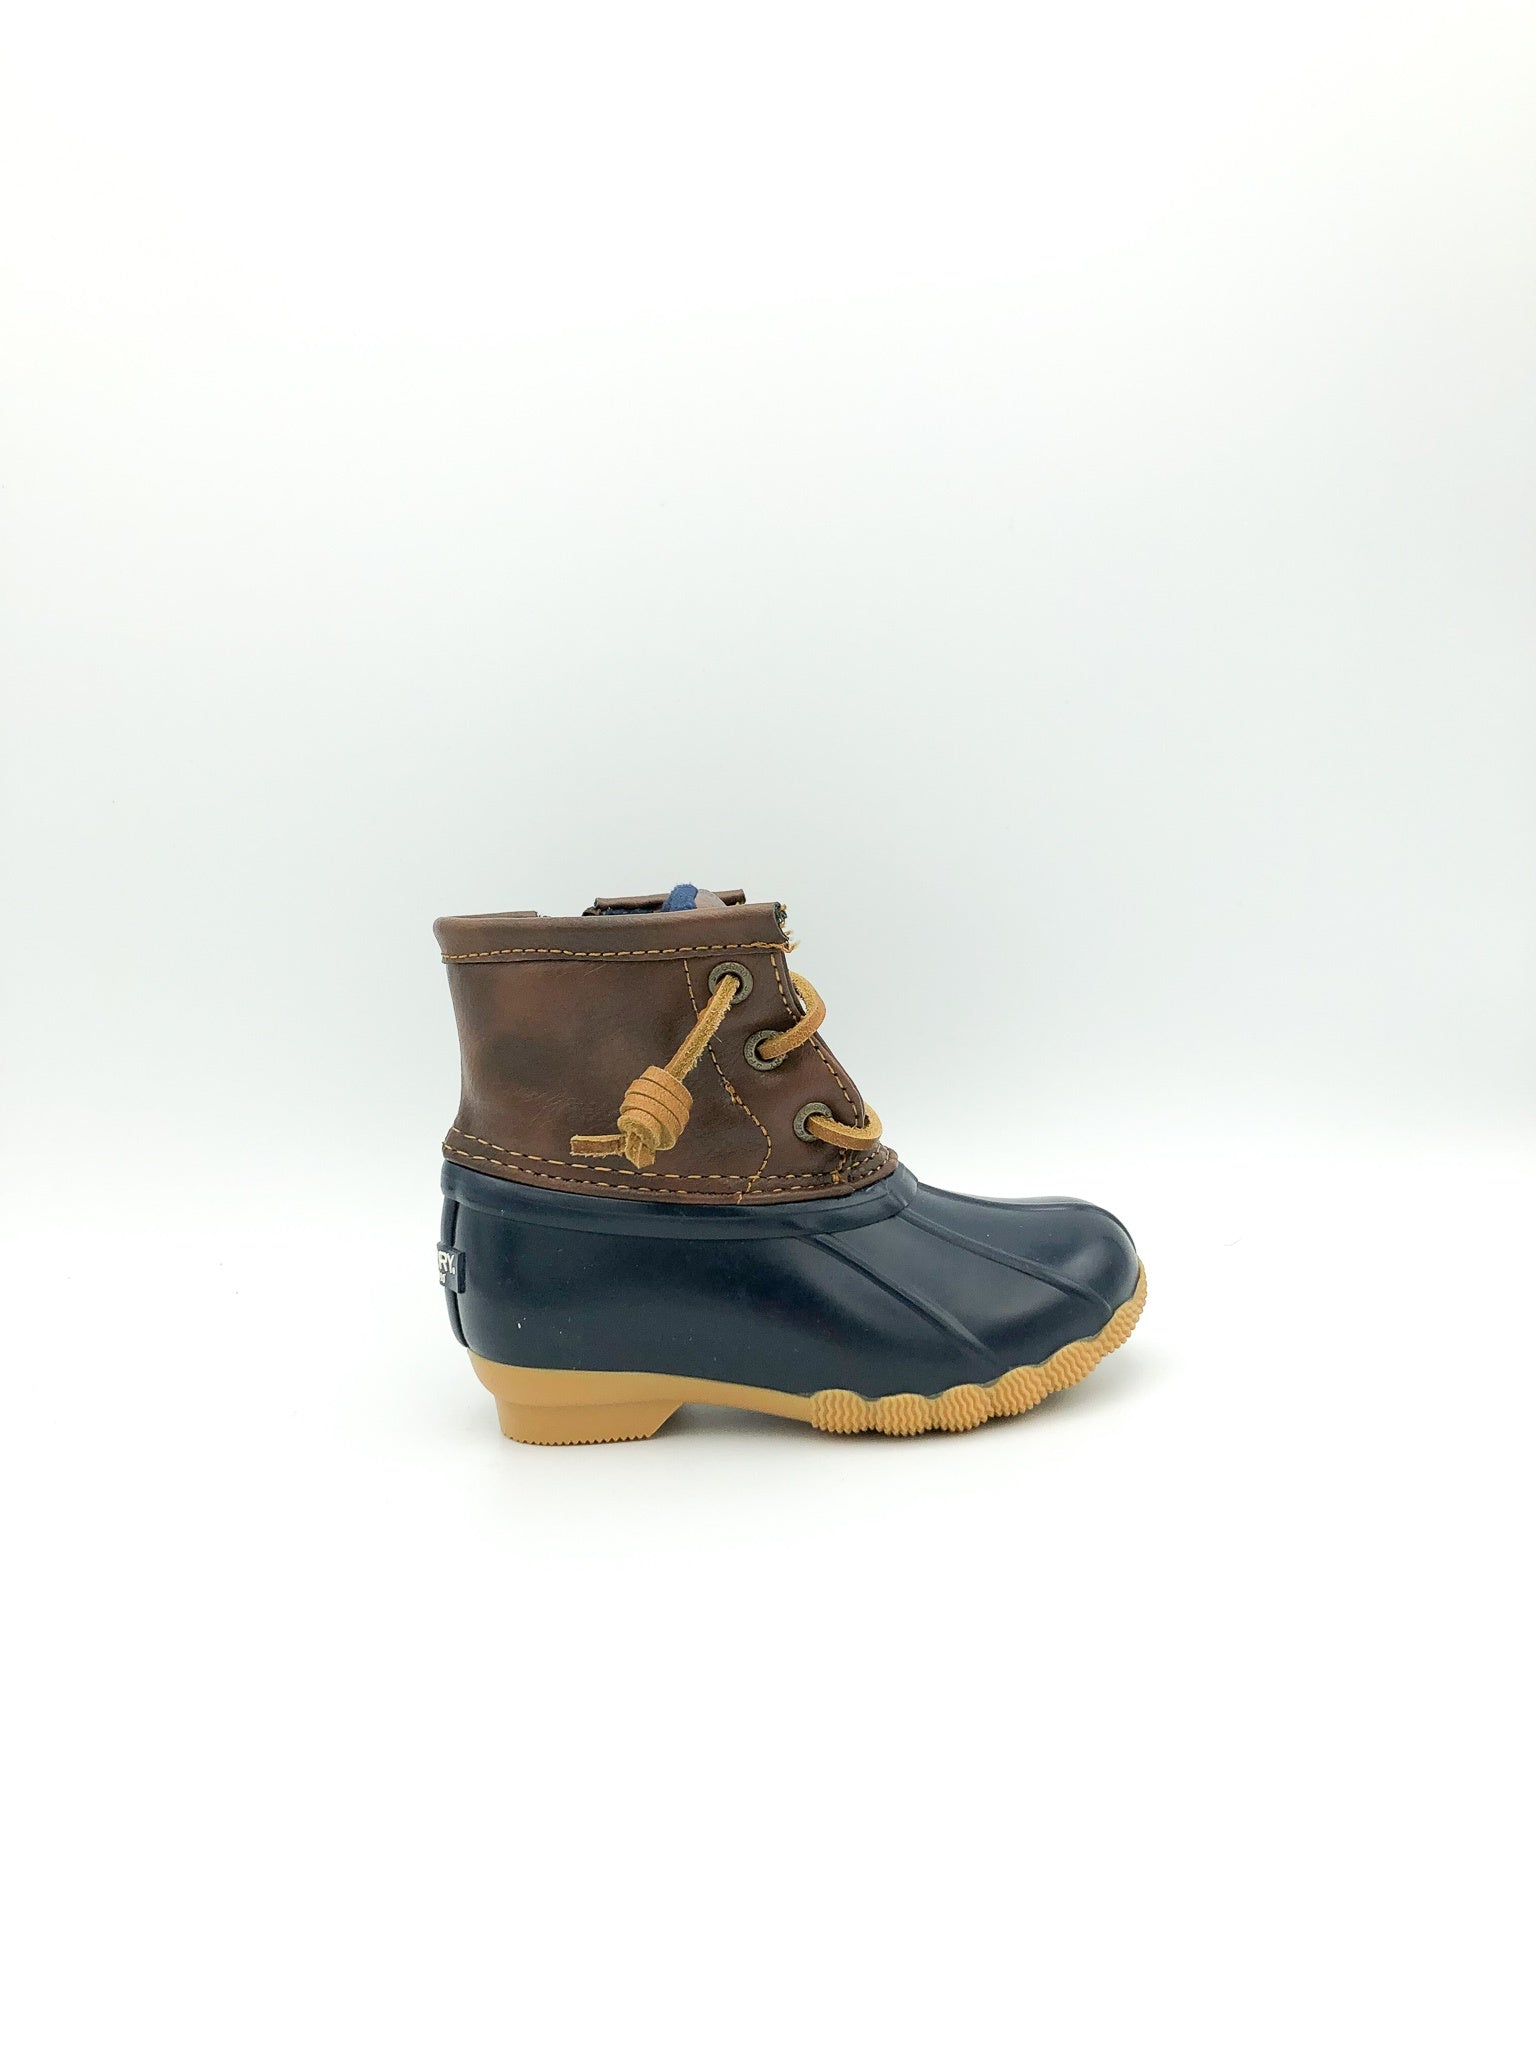 SPERRY - SALTWATER BOOT IN NAVY (CHILD 5-12)